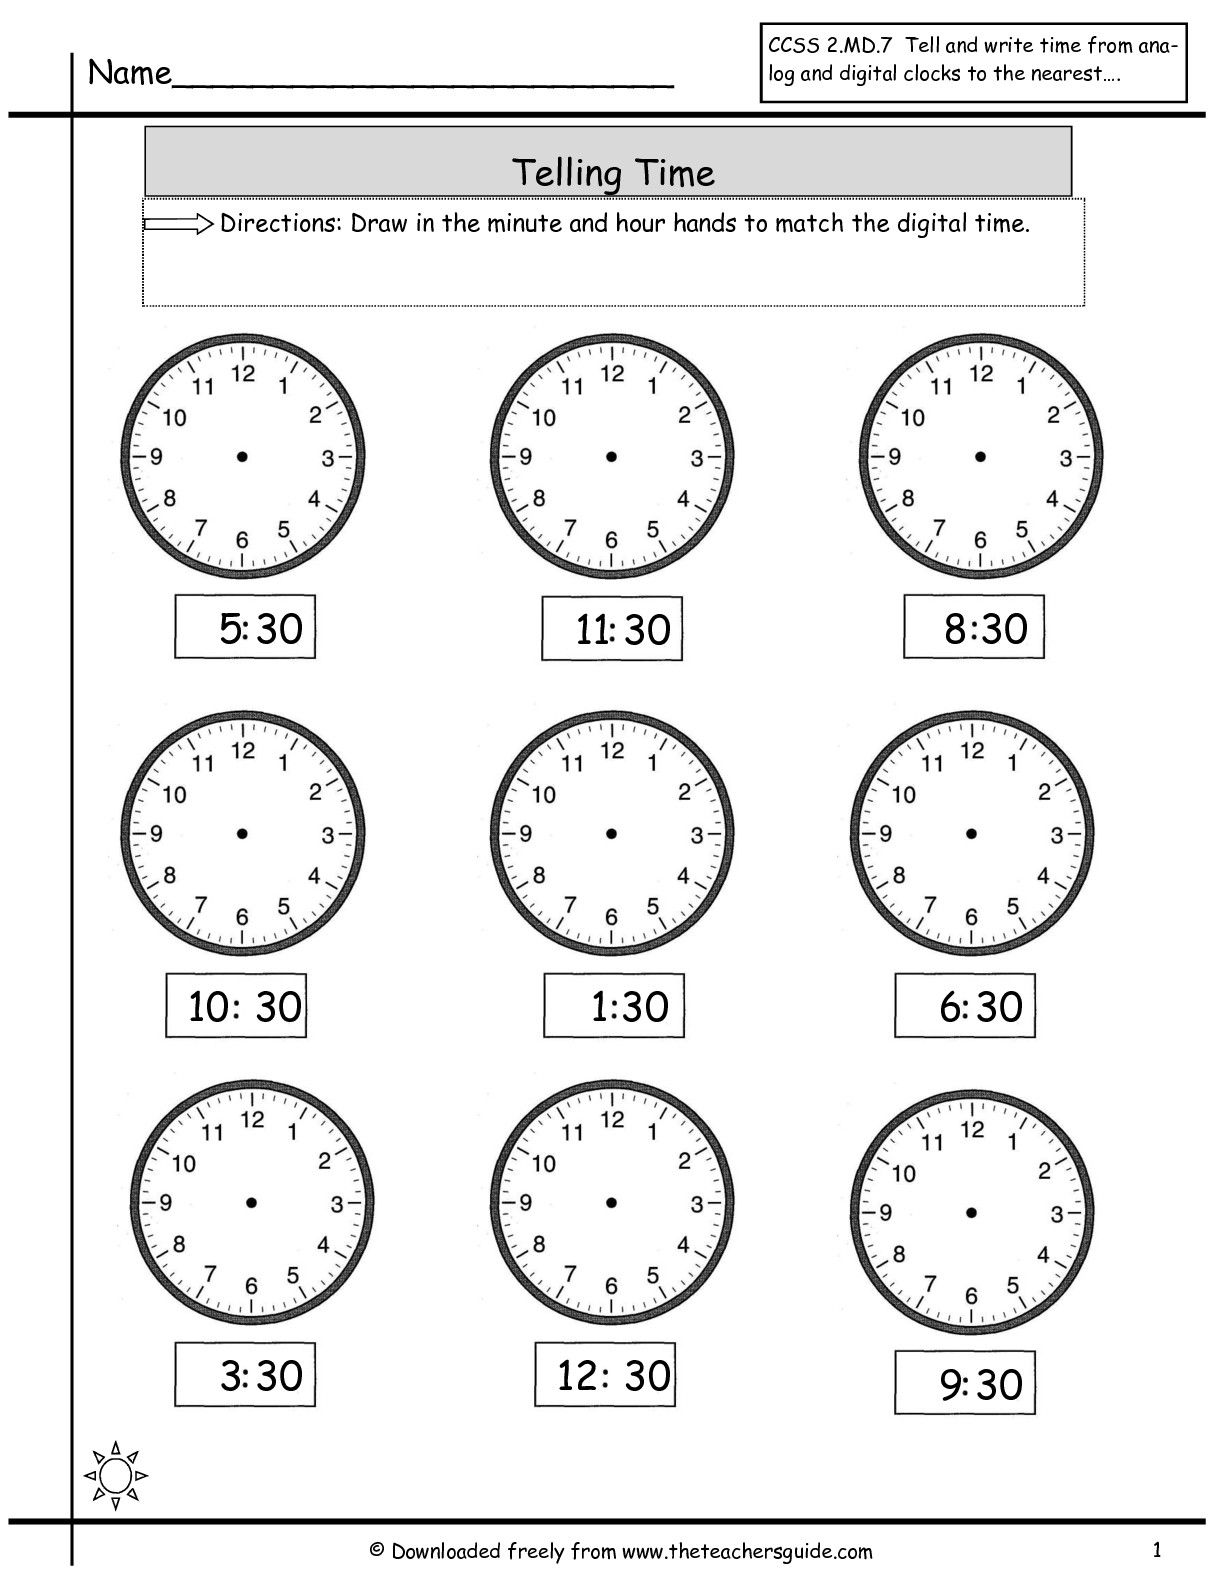 telling time to nearest half hour worksheet math pinterest worksheets telling time and. Black Bedroom Furniture Sets. Home Design Ideas